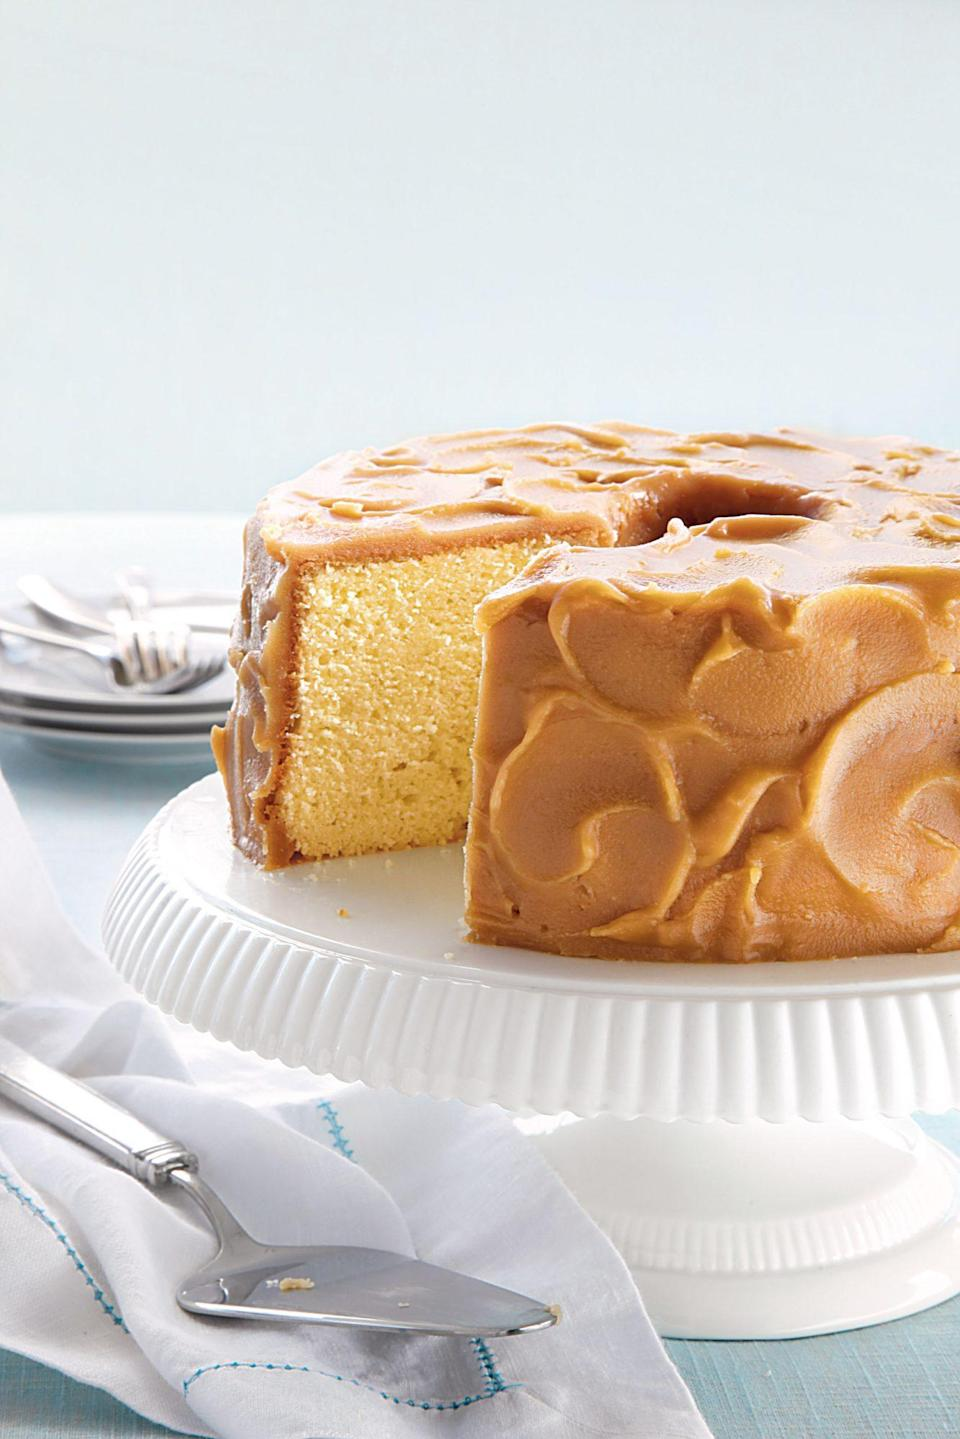 """<p><strong>Recipe: <a href=""""https://www.southernliving.com/recipes/caramel-frosted-pound-cake"""" rel=""""nofollow noopener"""" target=""""_blank"""" data-ylk=""""slk:Caramel-Frosted Pound Cake"""" class=""""link rapid-noclick-resp"""">Caramel-Frosted Pound Cake</a></strong></p> <p>This cake is a a surefire crowd-pleaser. Before serving, use an offset spatula to create a frosted swirl effect. </p>"""